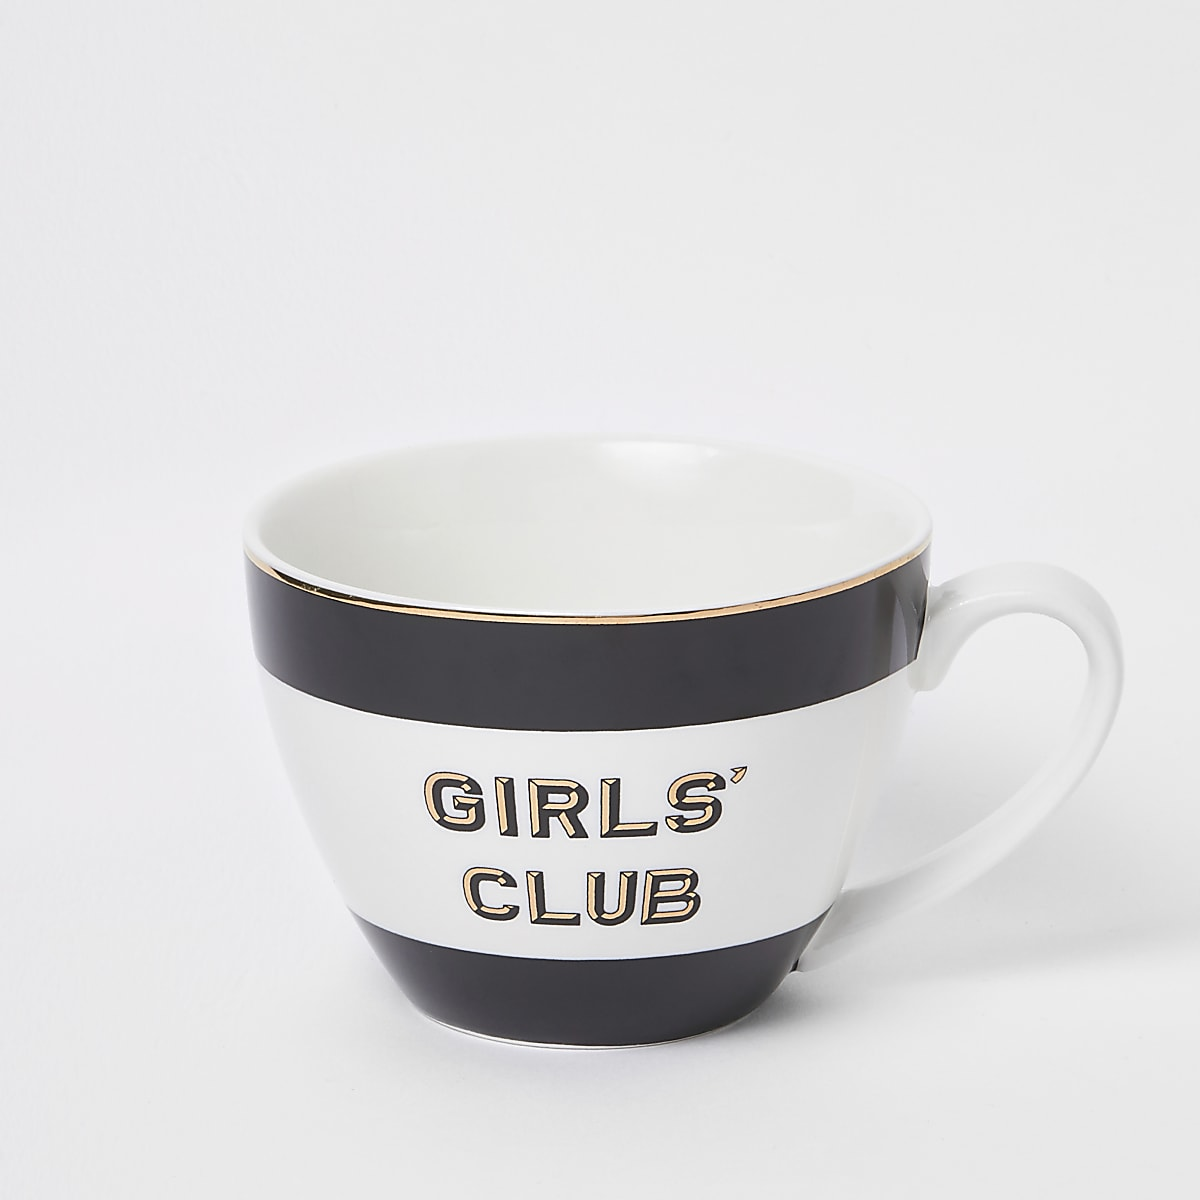 Black 'Girls club' bowl mug